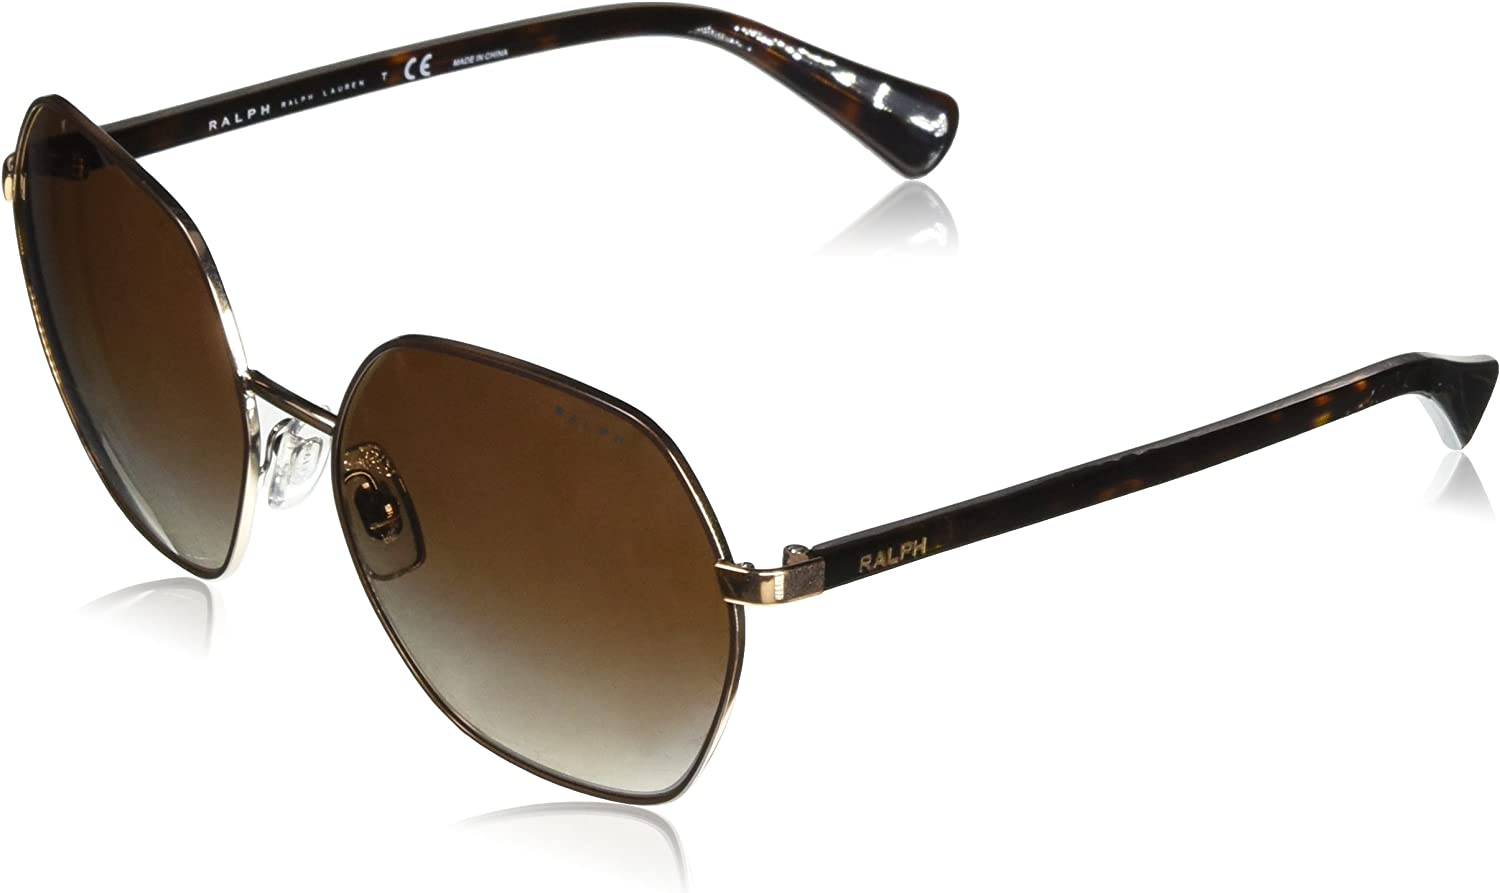 Ralph by Ralph Lauren Women's Metal Woman Sunglass NonPolarized Iridium Square